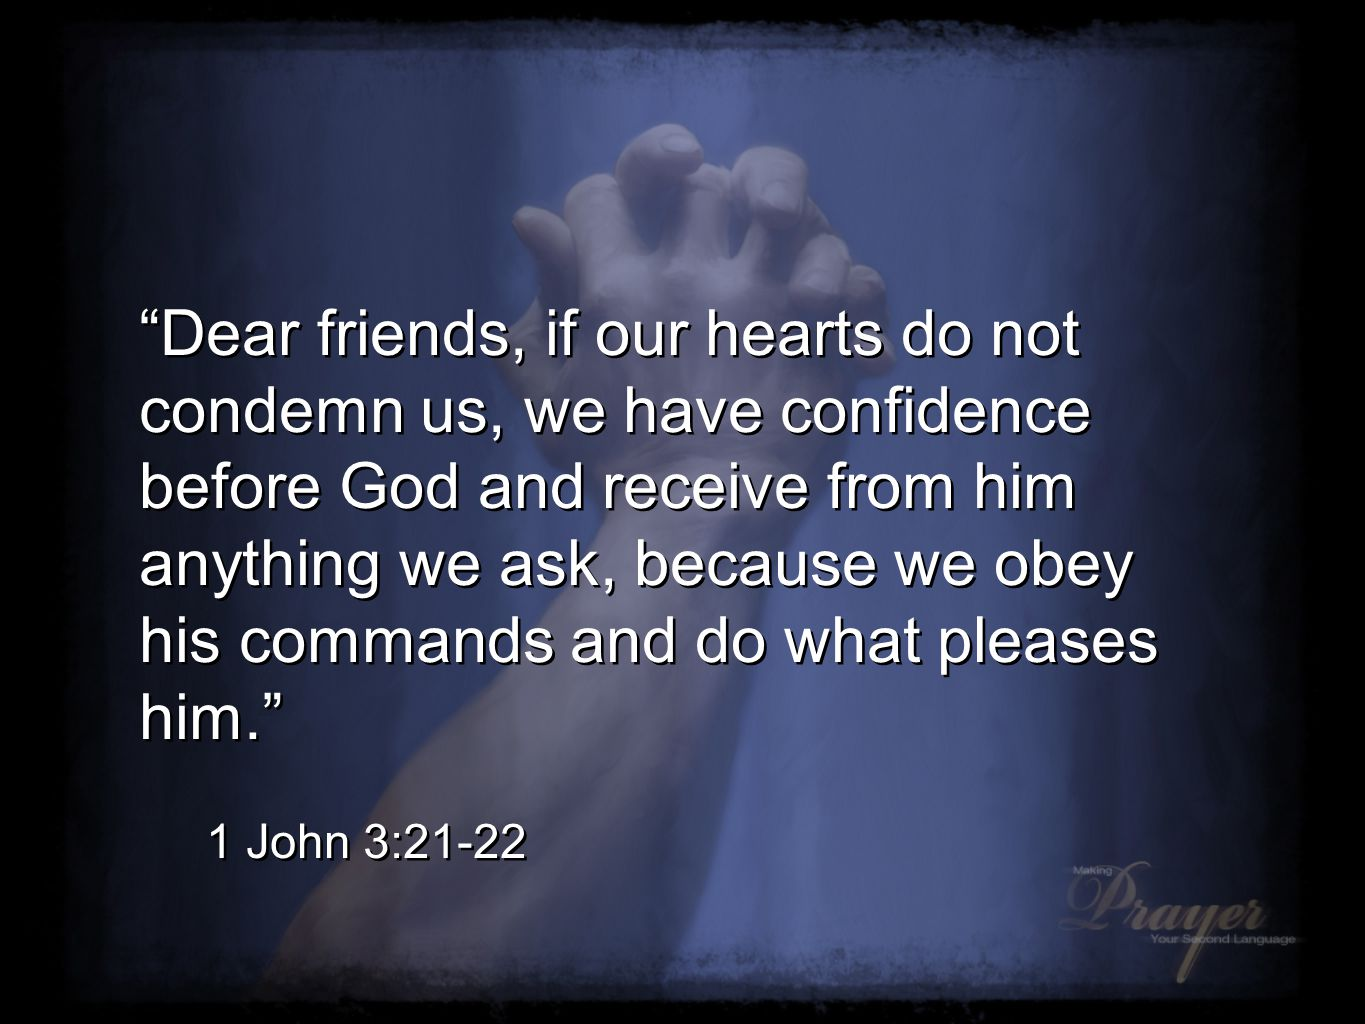 Dear friends, if our hearts do not condemn us, we have confidence before God and receive from him anything we ask, because we obey his commands and do what pleases him. 1 John 3:21-22 Dear friends, if our hearts do not condemn us, we have confidence before God and receive from him anything we ask, because we obey his commands and do what pleases him. 1 John 3:21-22